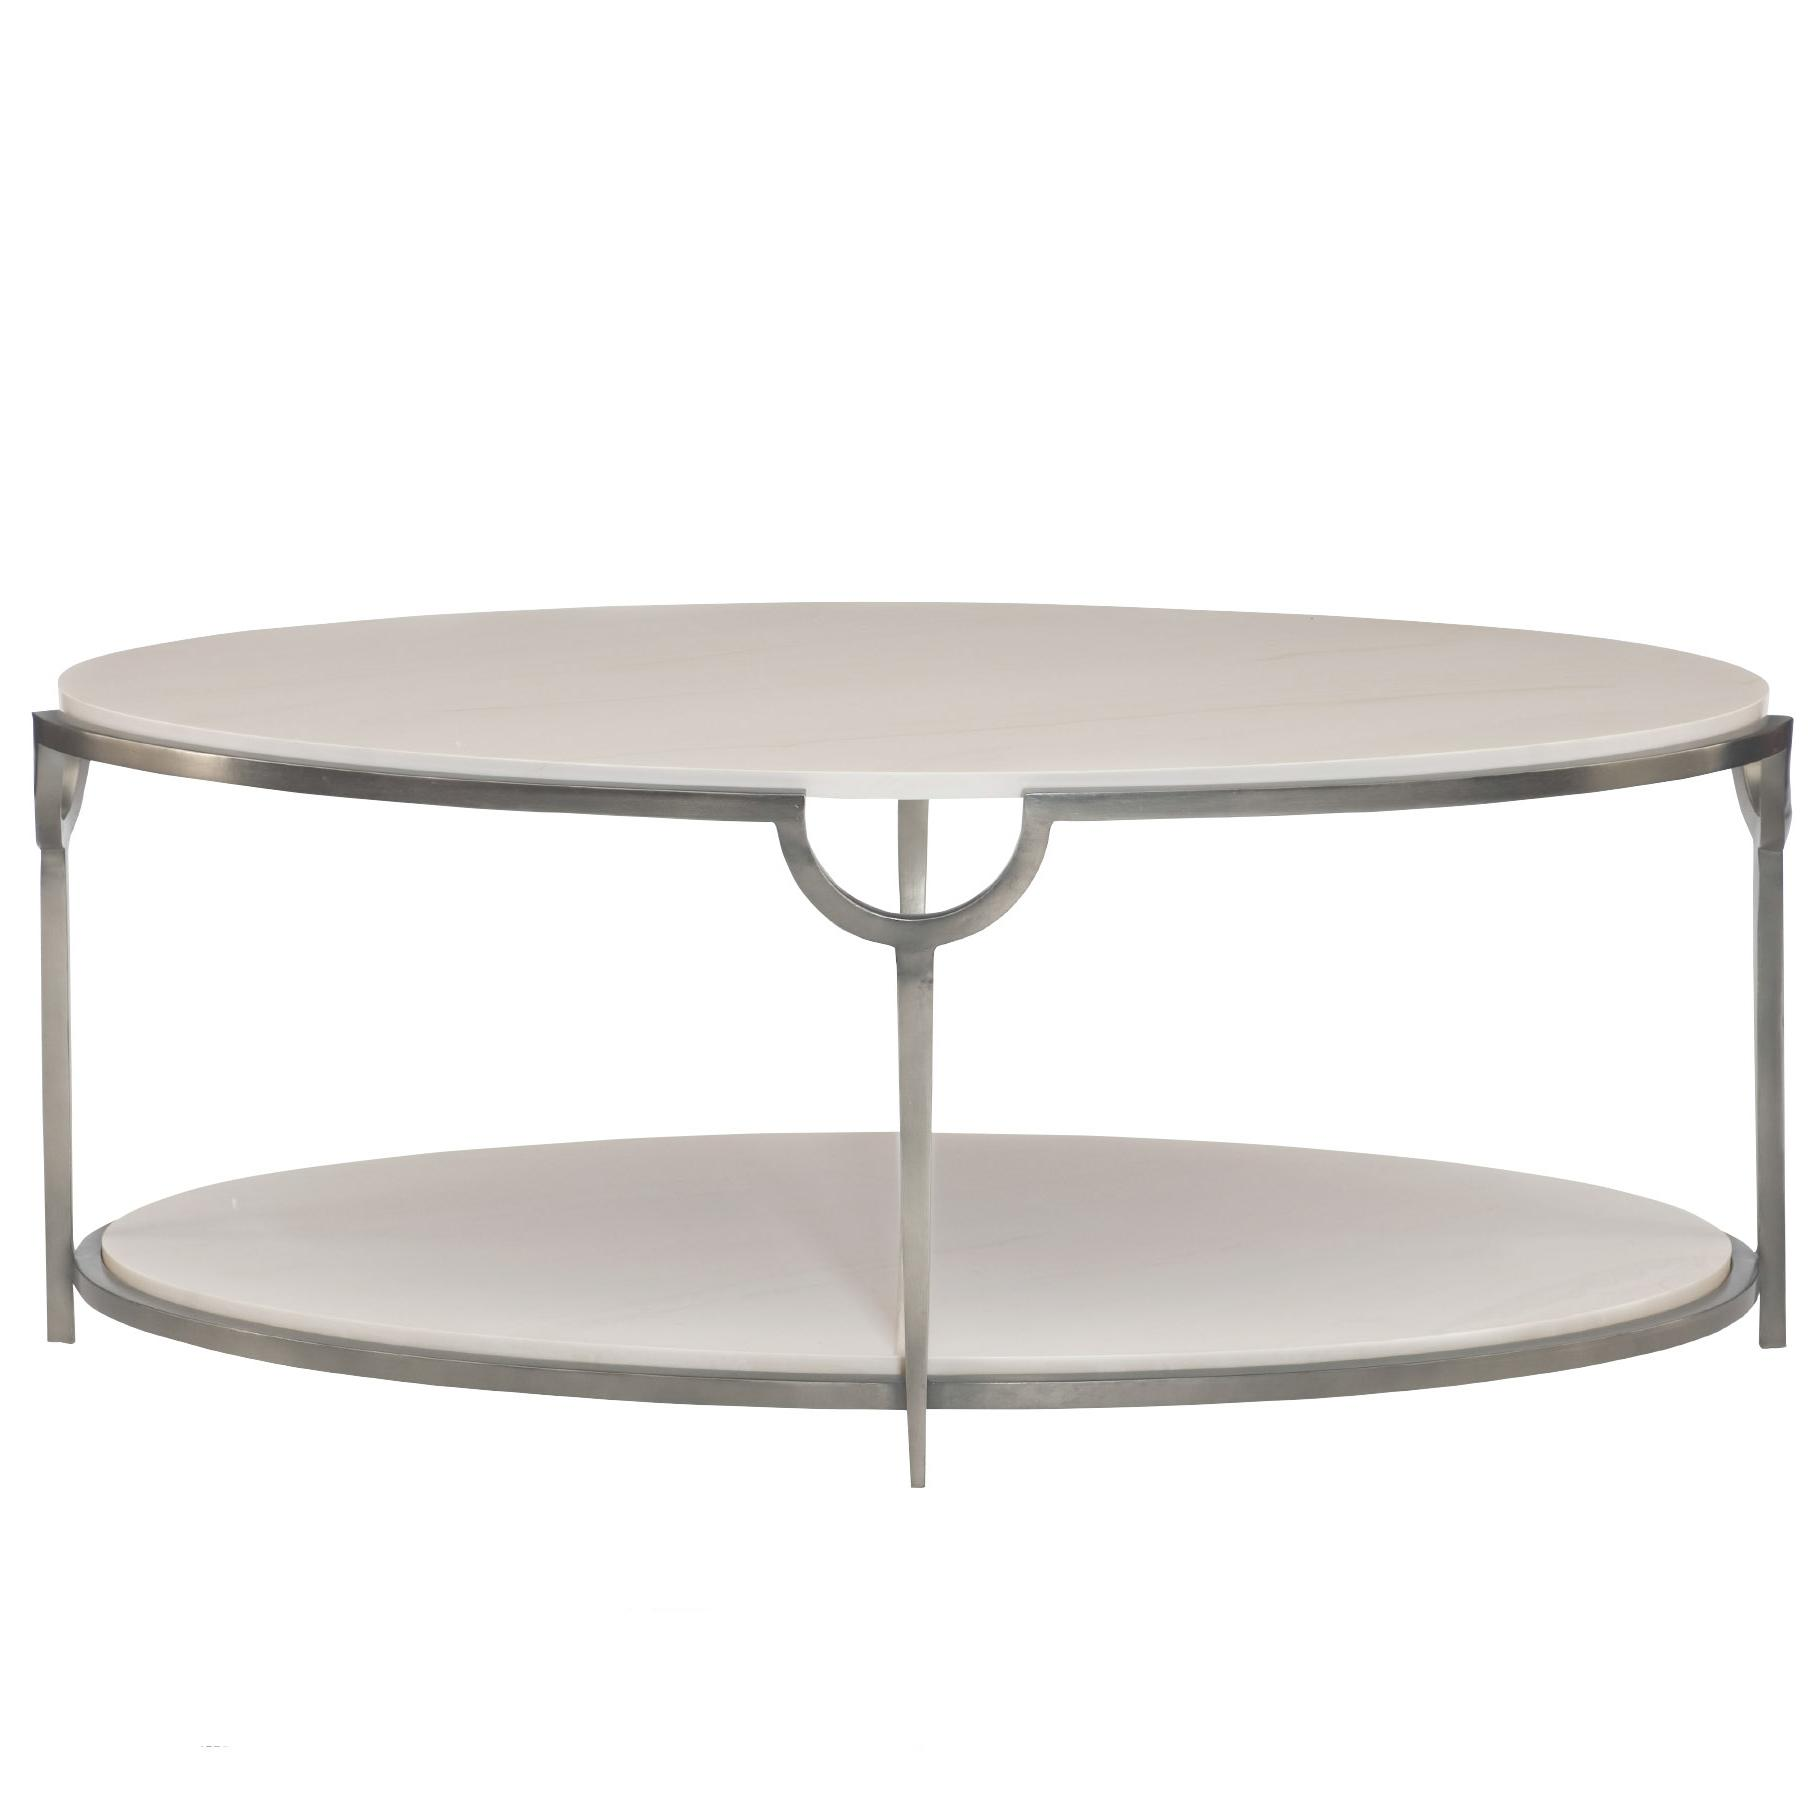 Rectangle Faux Marble Coffee Table: Bernhardt Morello Oval Cocktail Table With Faux Marble Top